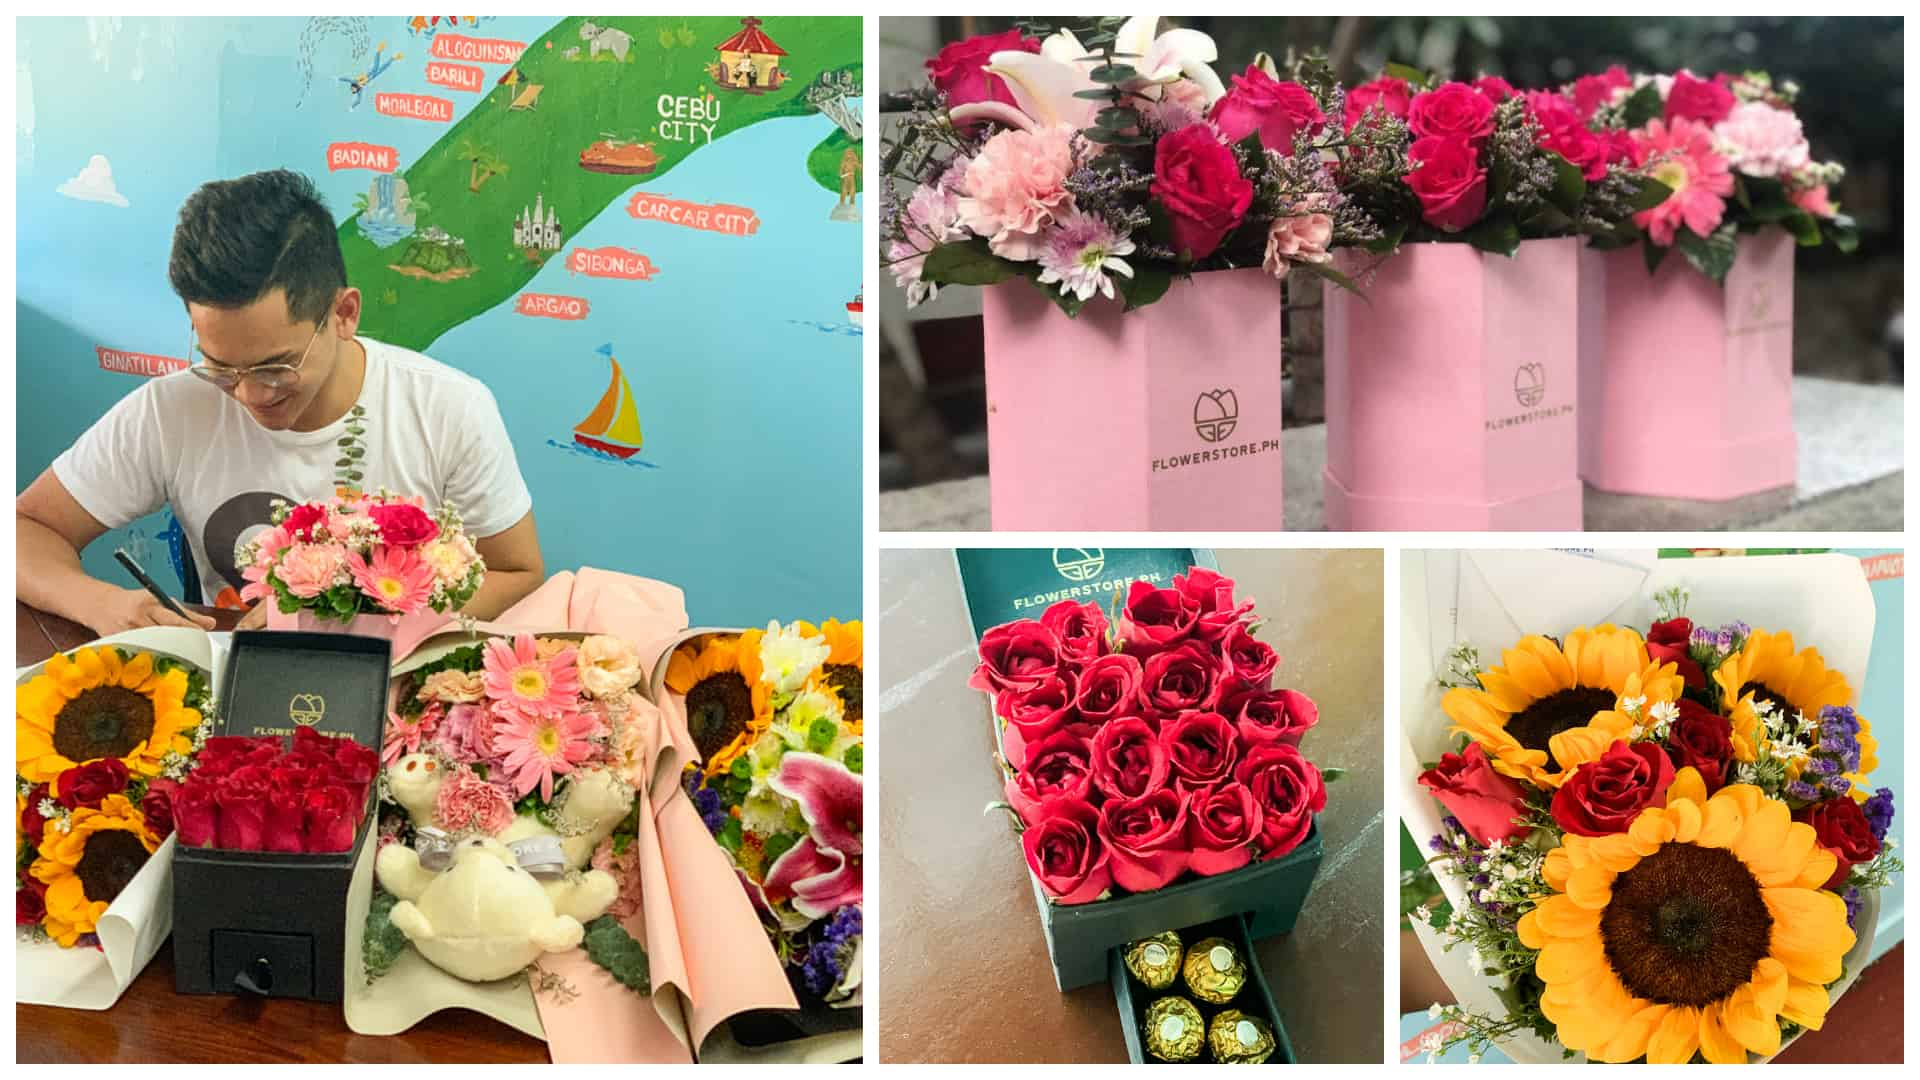 Affordable Flower Delivery In Cebu You Should Check Out